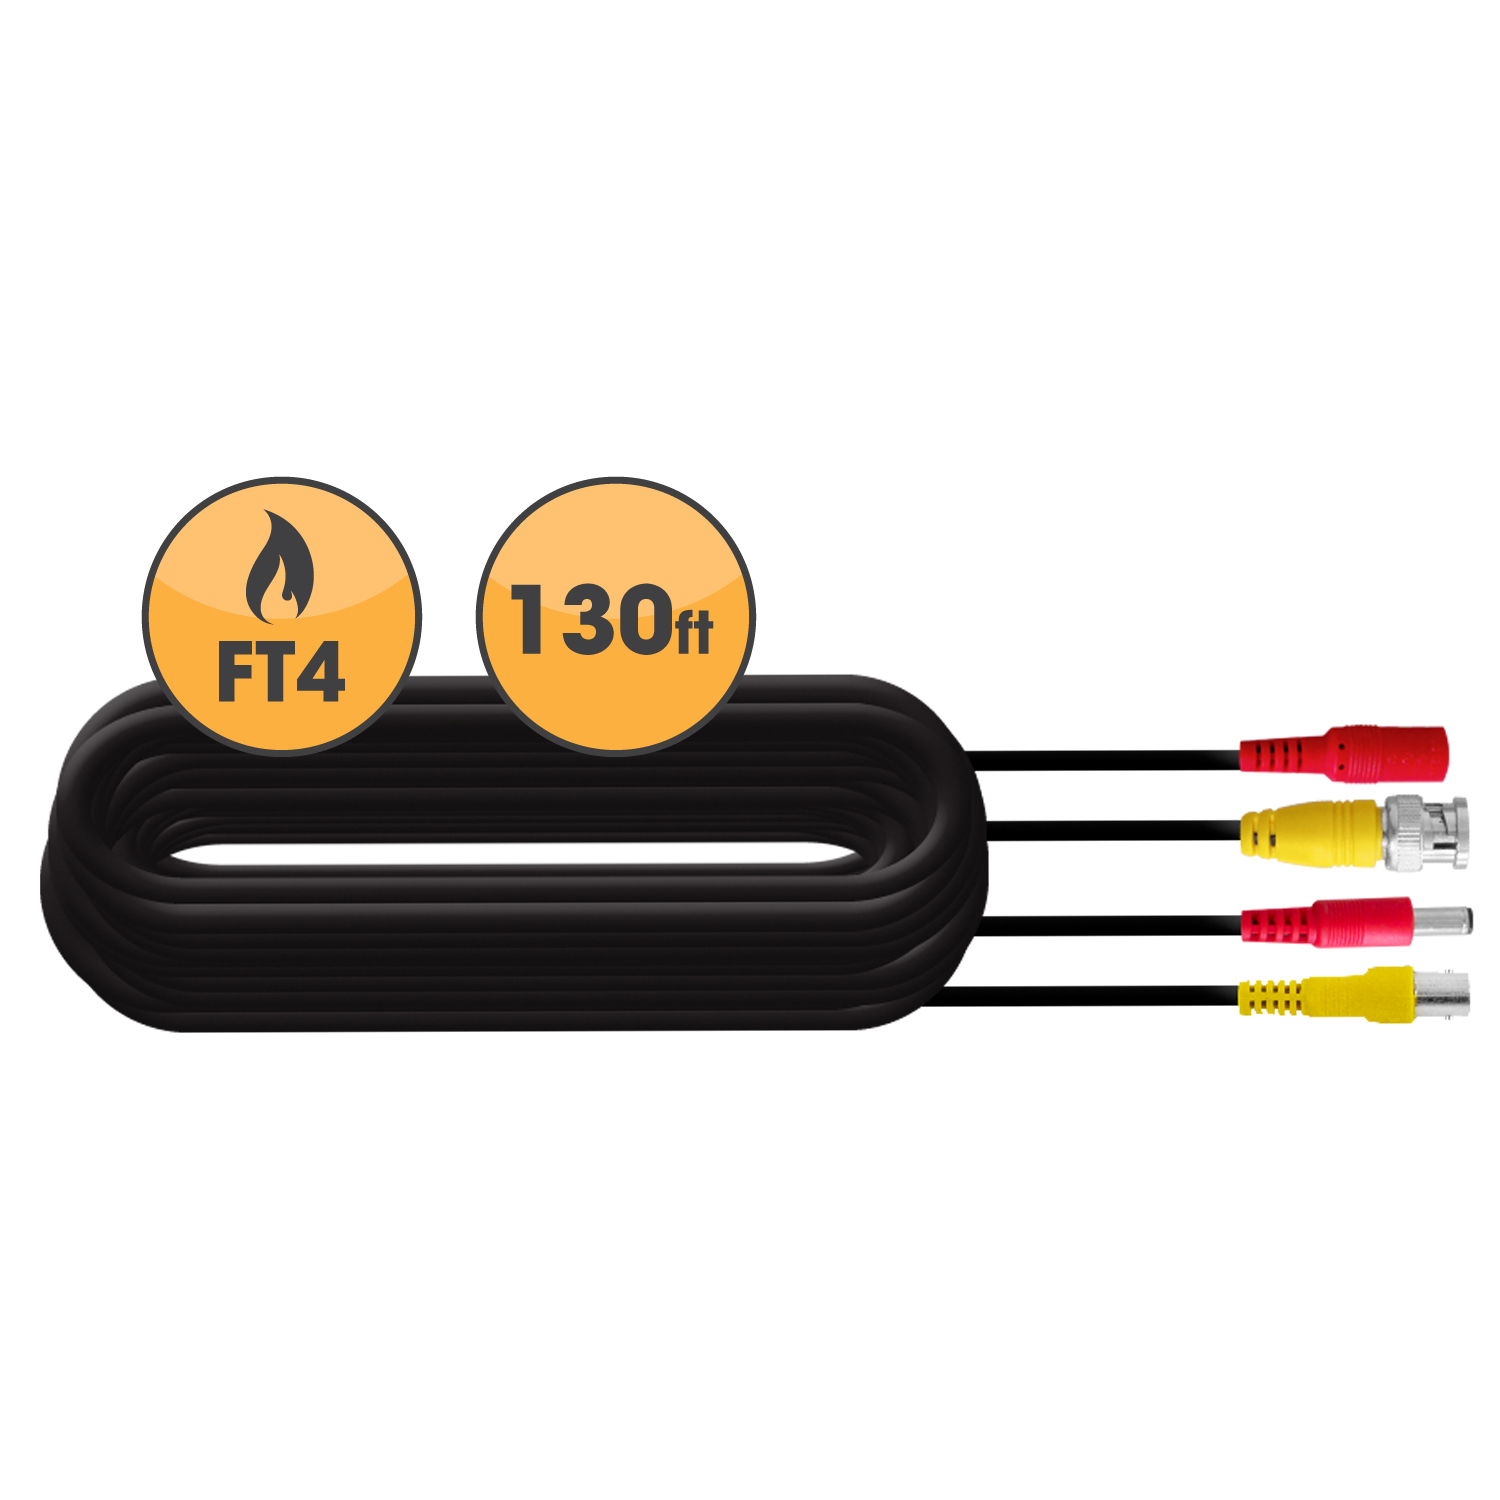 130ft In-Wall, Fire-Rated UL/FT4 Certified Extension Cable (21009)